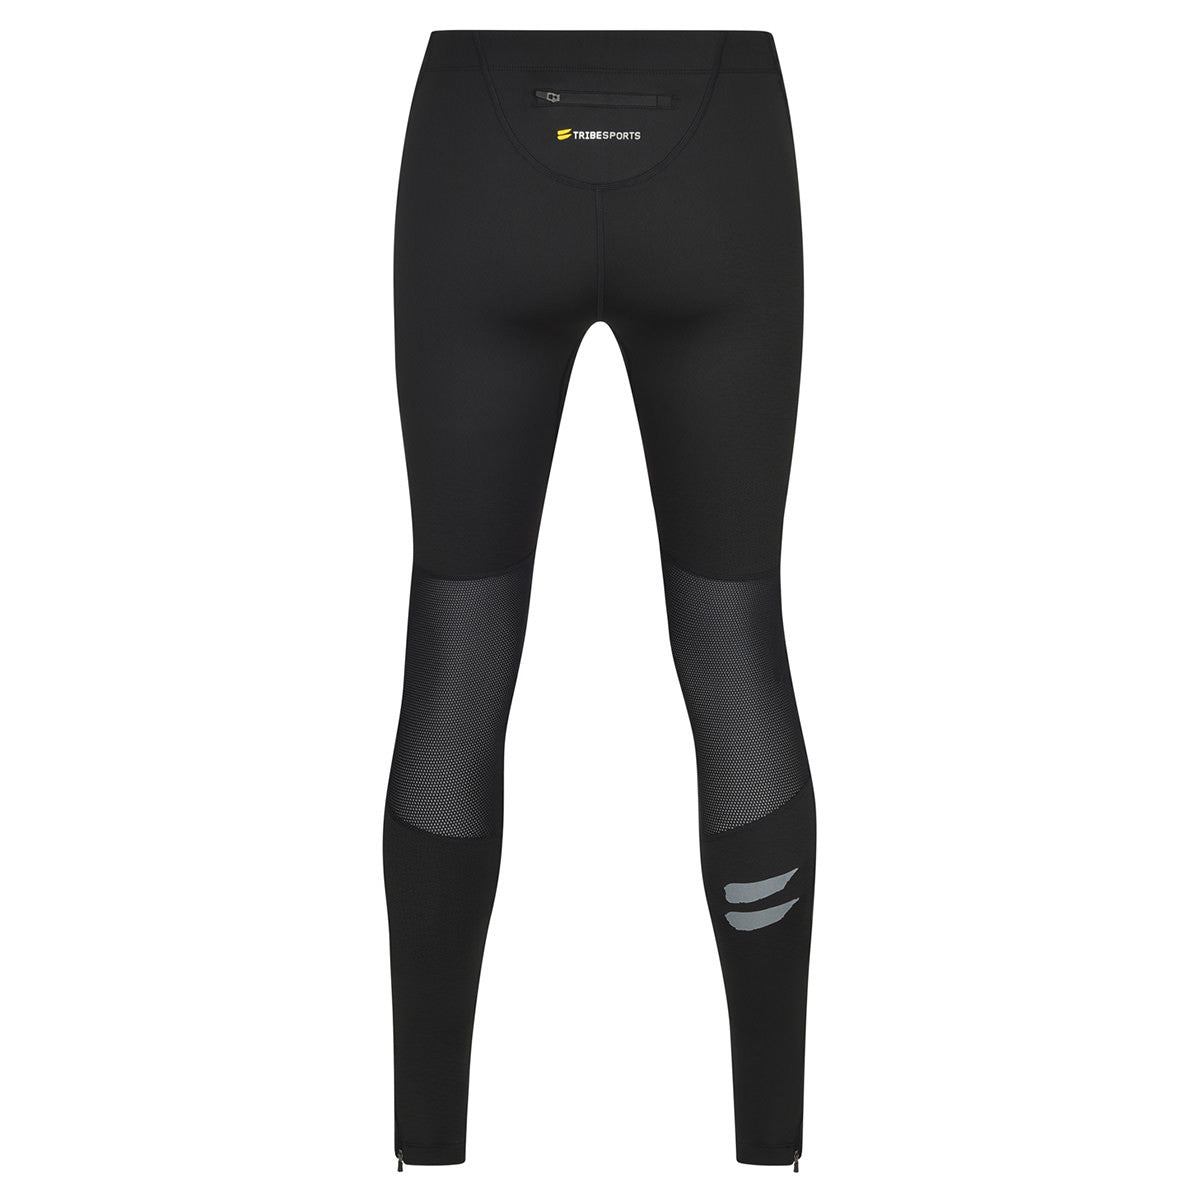 Men's Running Tights - Black / Charcoal , Tribesports - 2